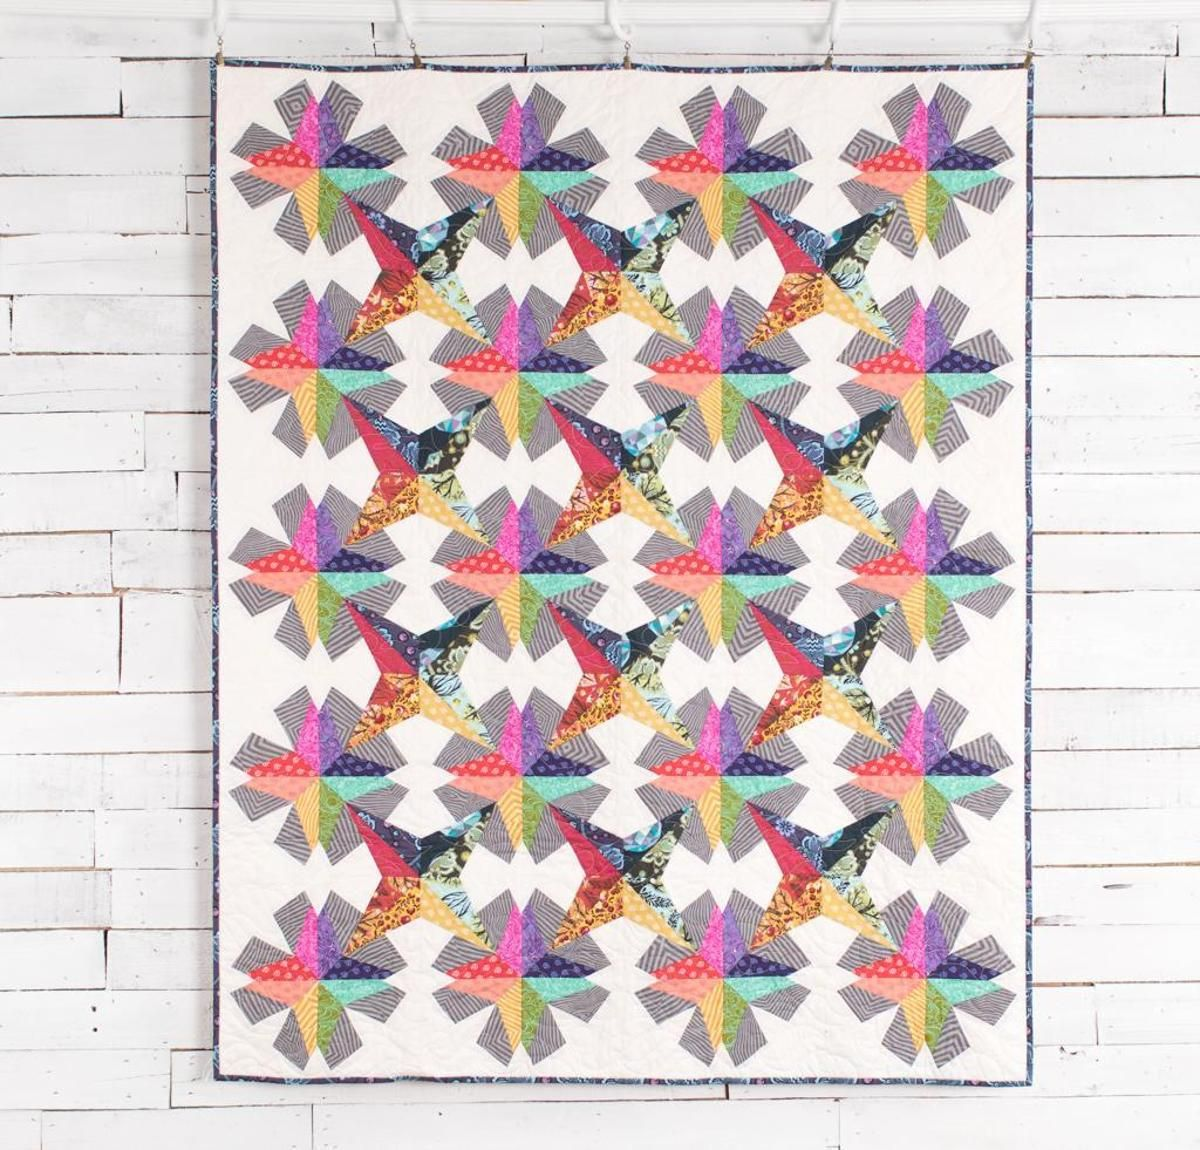 Spectrum Stars Quilt Kit by Tula Pink featuring FreeSpirit True Colors Fabric | Craftsy